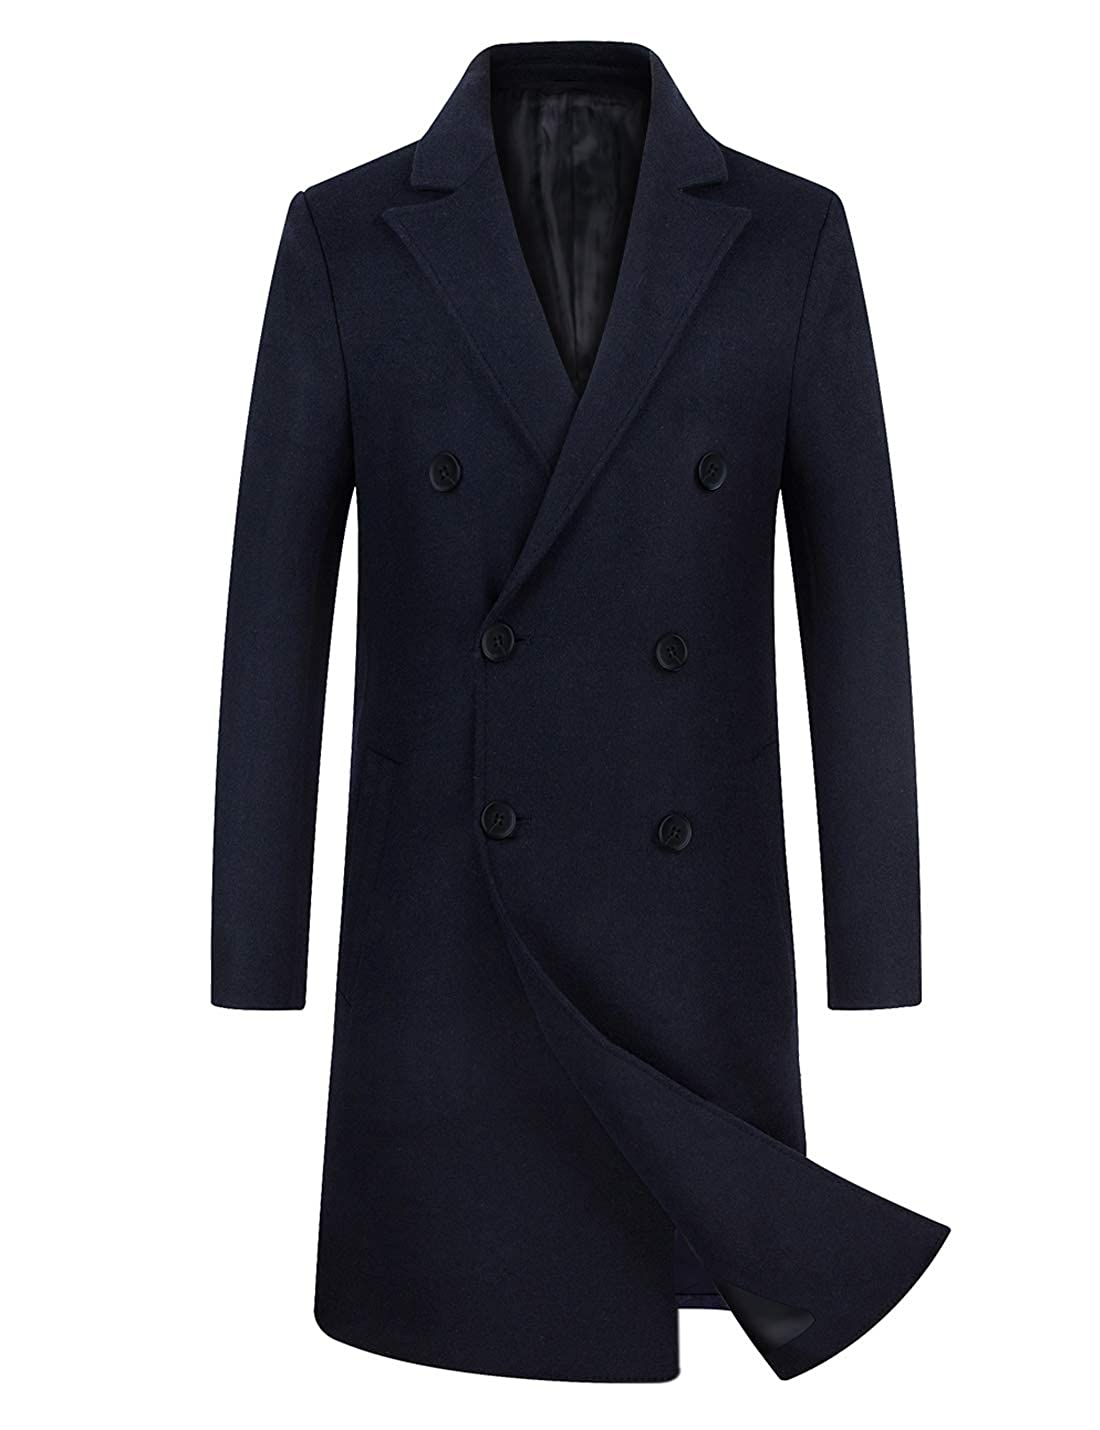 Men's Vintage Style Coats and Jackets zeetoo Mens Wool Trench Coat Winter Slim Fit Wool Jacket Long Peacoat Overcoat $87.99 AT vintagedancer.com